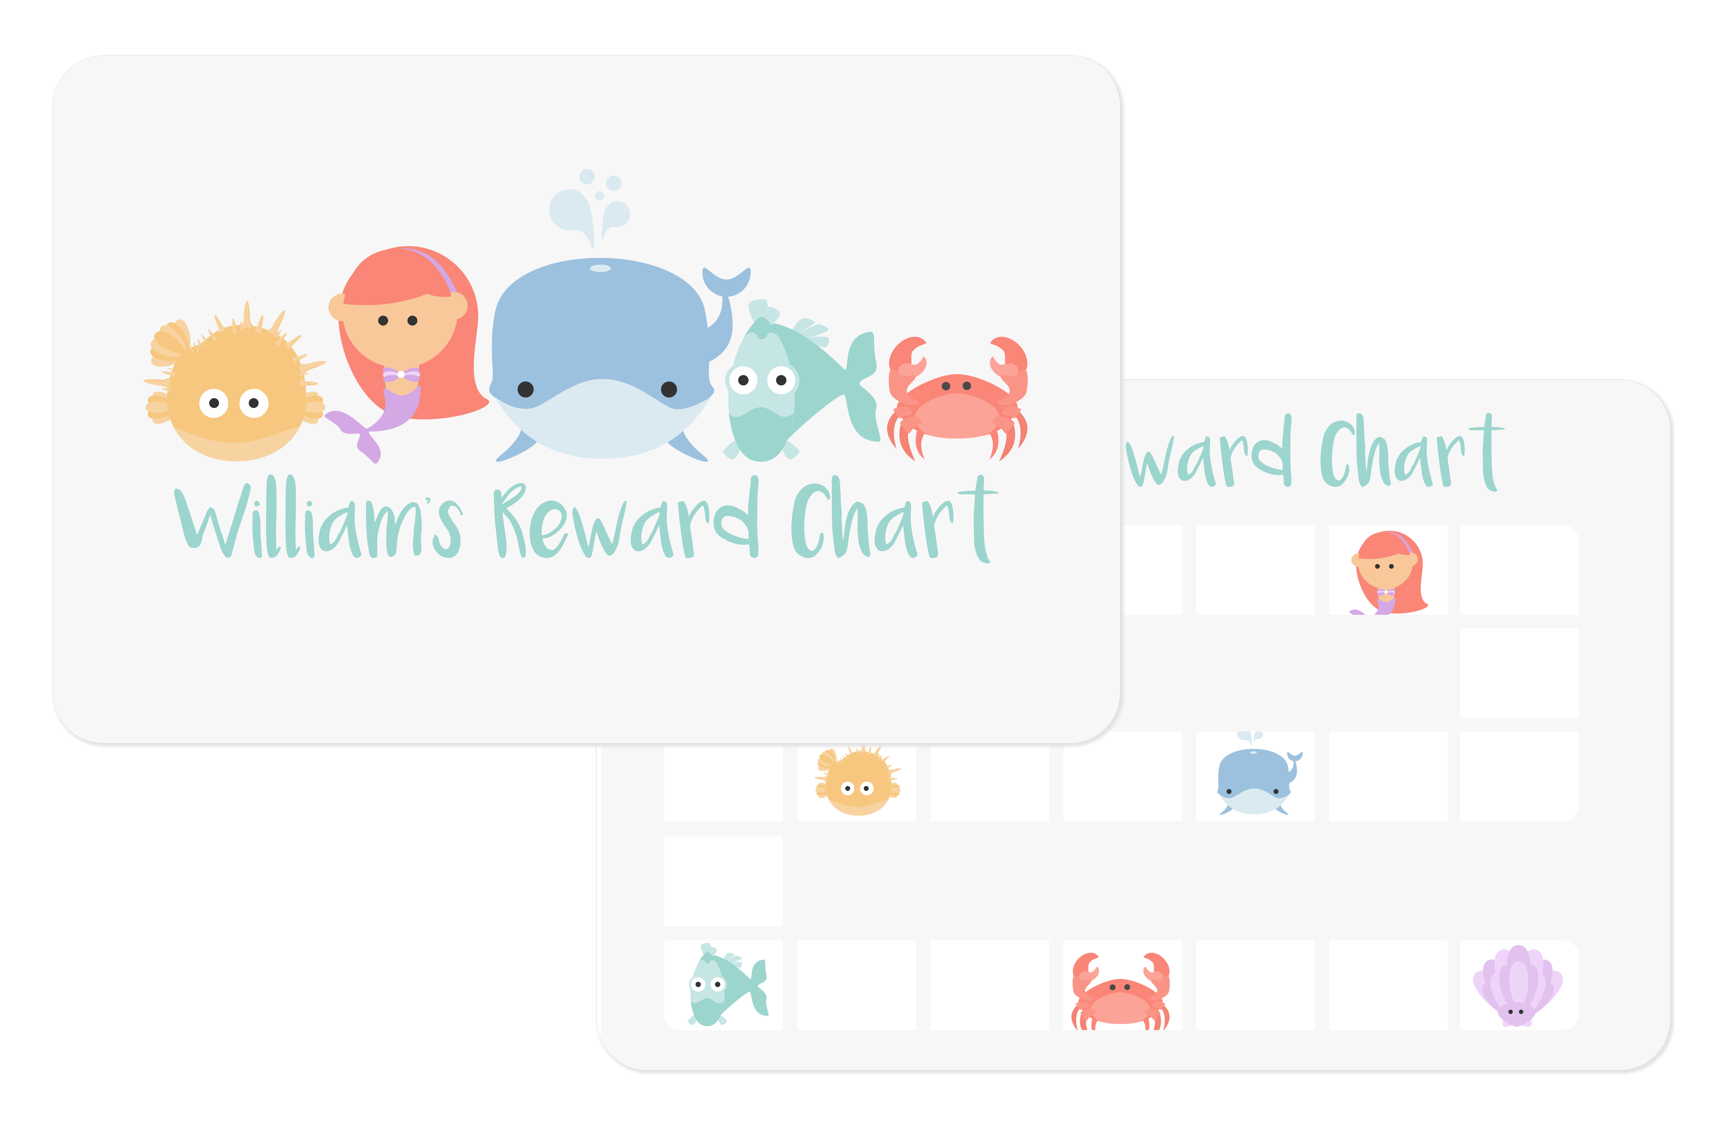 reward-chart-sea-animals-shop6.jpg